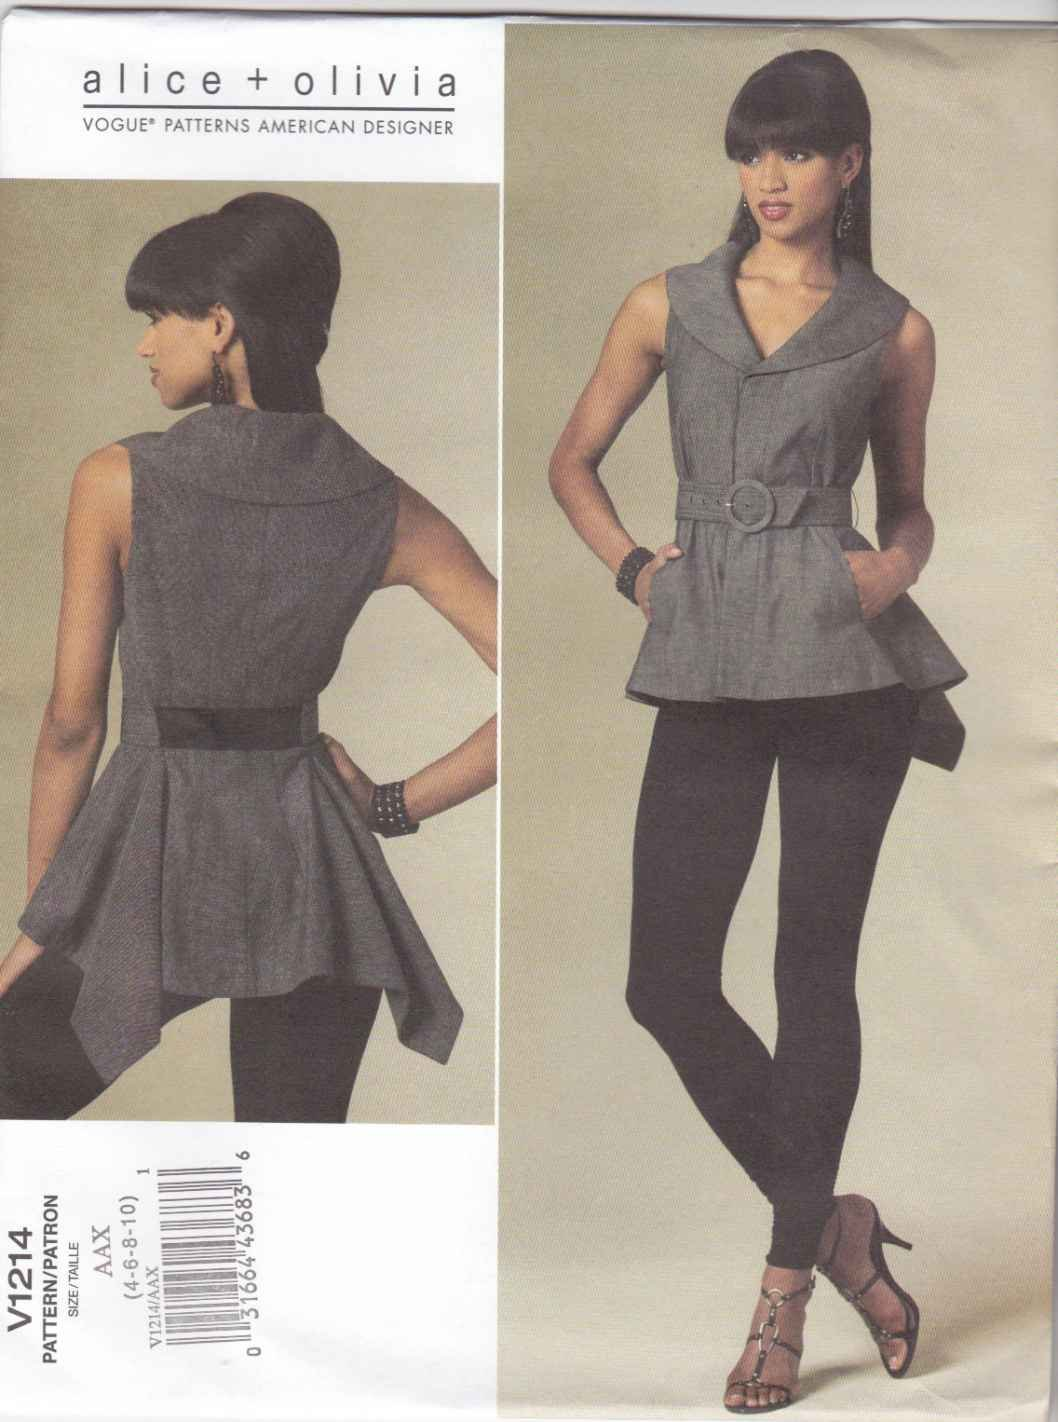 Vogue Sewing Pattern 1214 V1214 Misses Size 4-10 Alice & Olivia Sleeveless Top Belt Knit Leggings